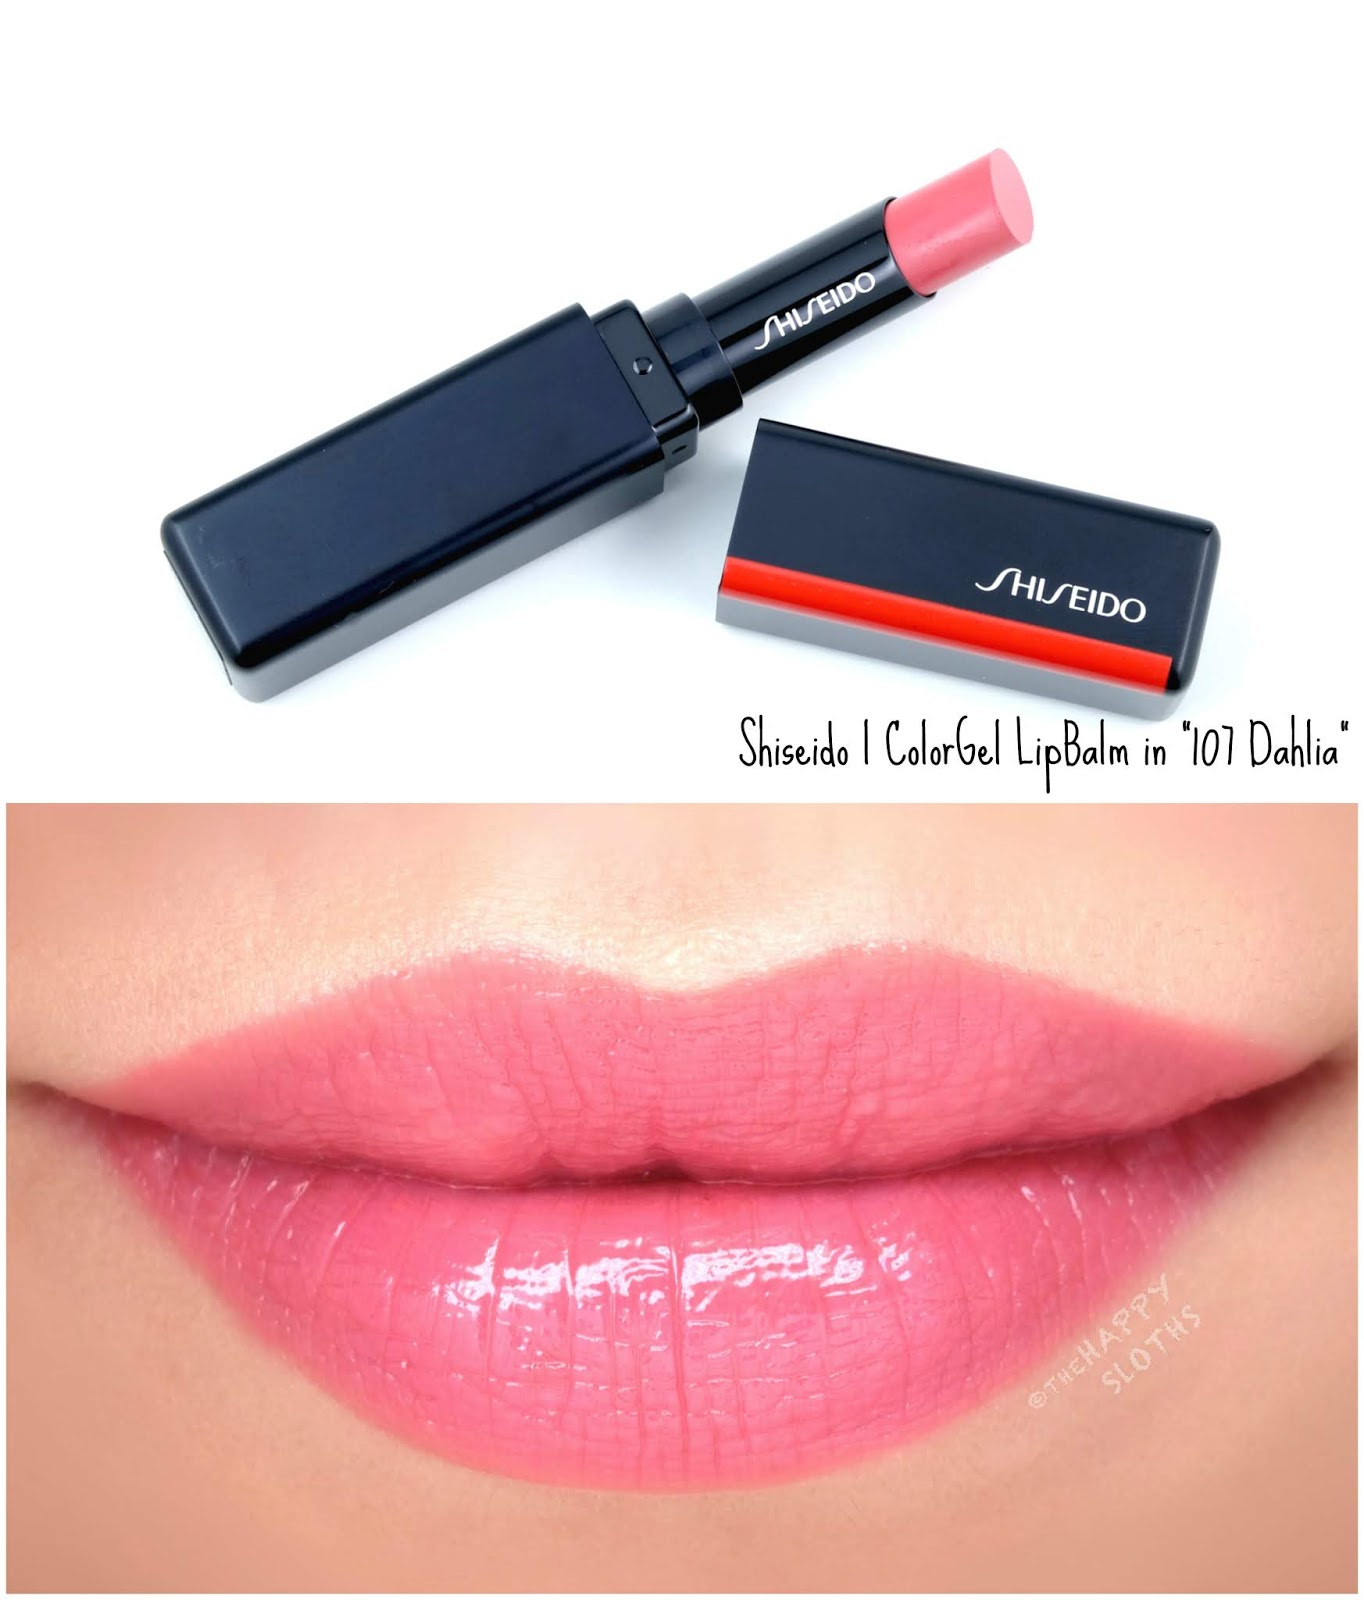 "Shiseido | ColorGel LipBalm in ""107 Dahlia"": Review and Swatches"